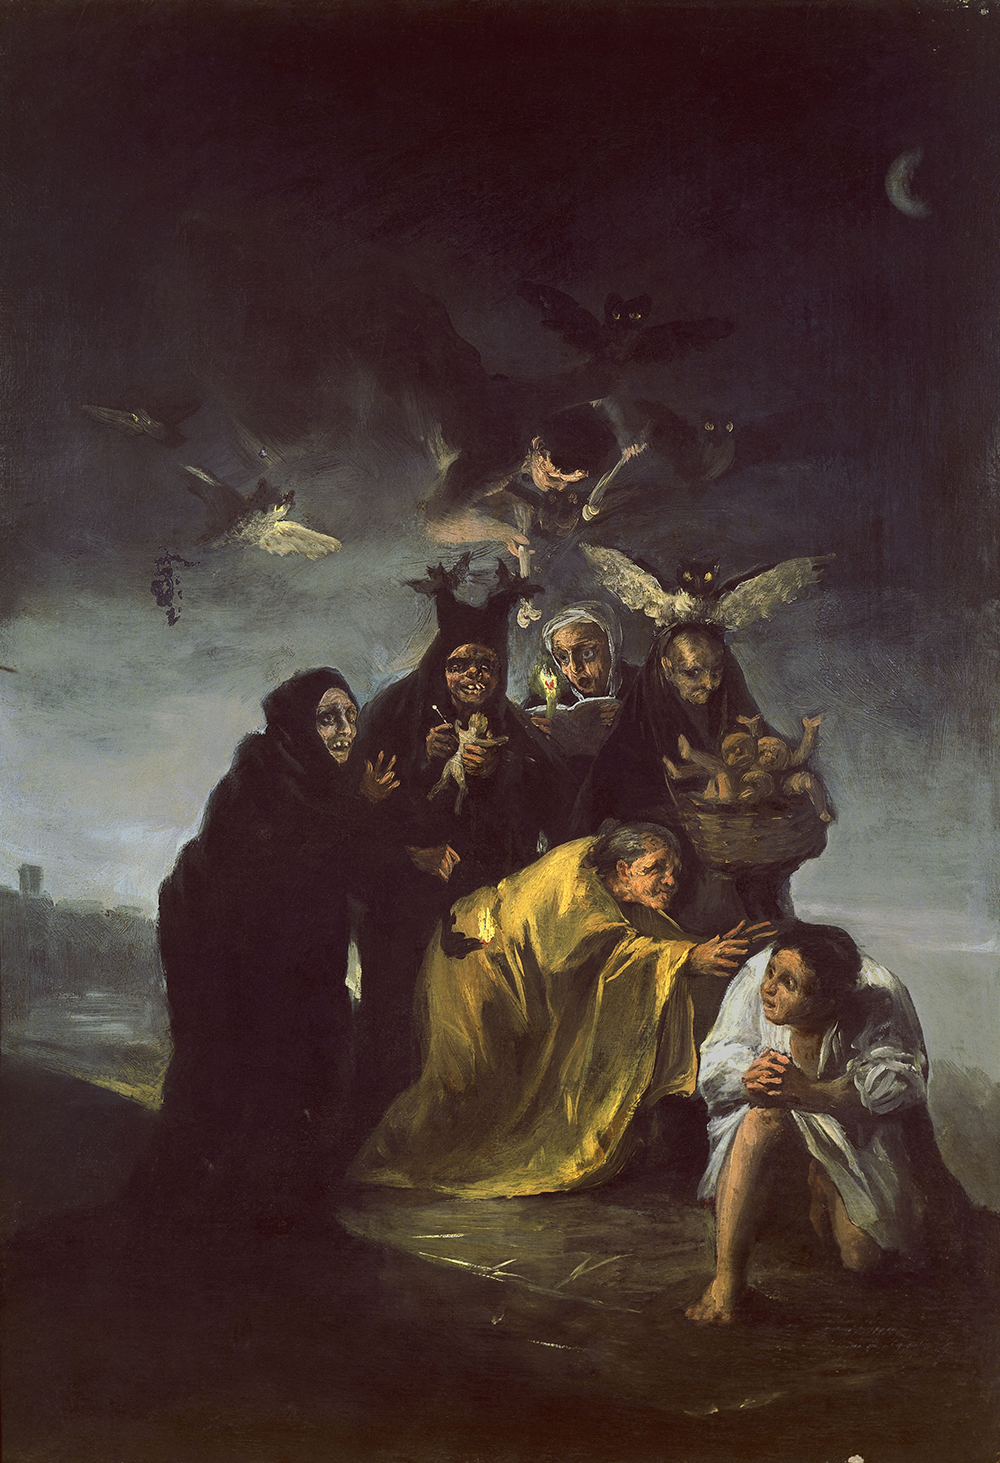 The Incantation or The Witches, by Francisco Goya, c. 1797. © Album/Art Resource, NY.